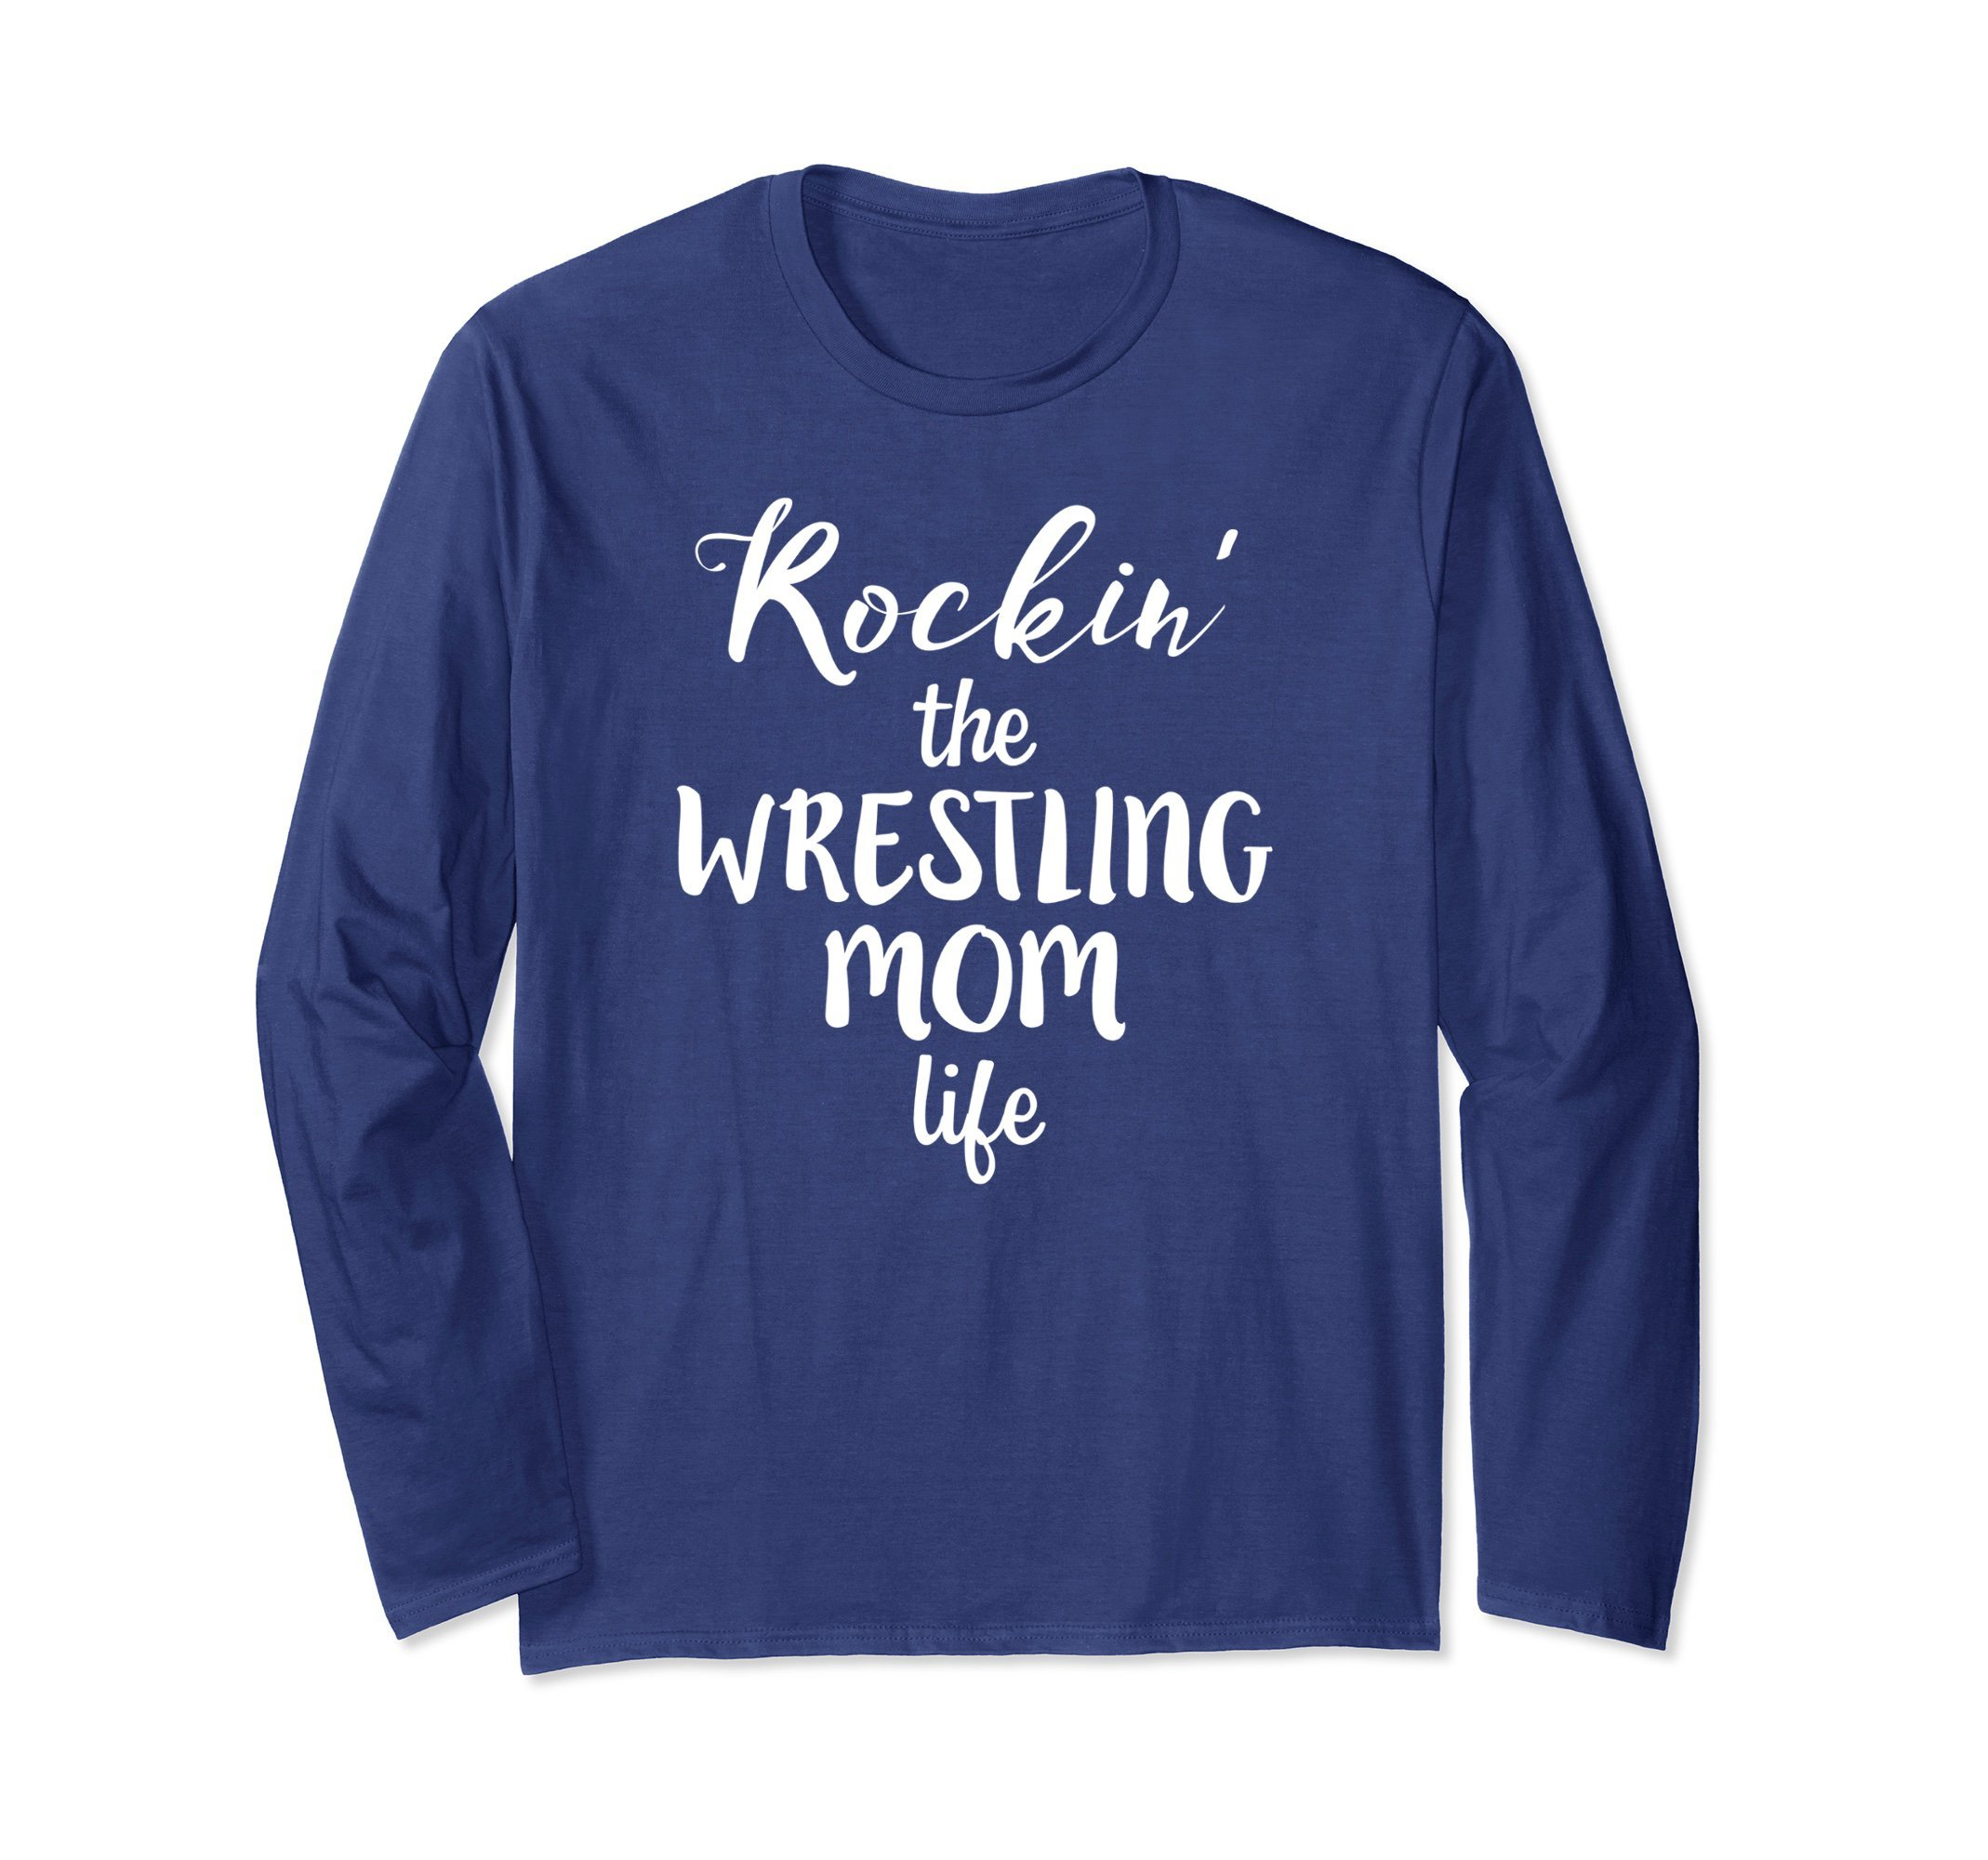 Unisex Rockin' the Wrestling Mom Life Funny LONG SLEEVE T-Shirt Large Navy